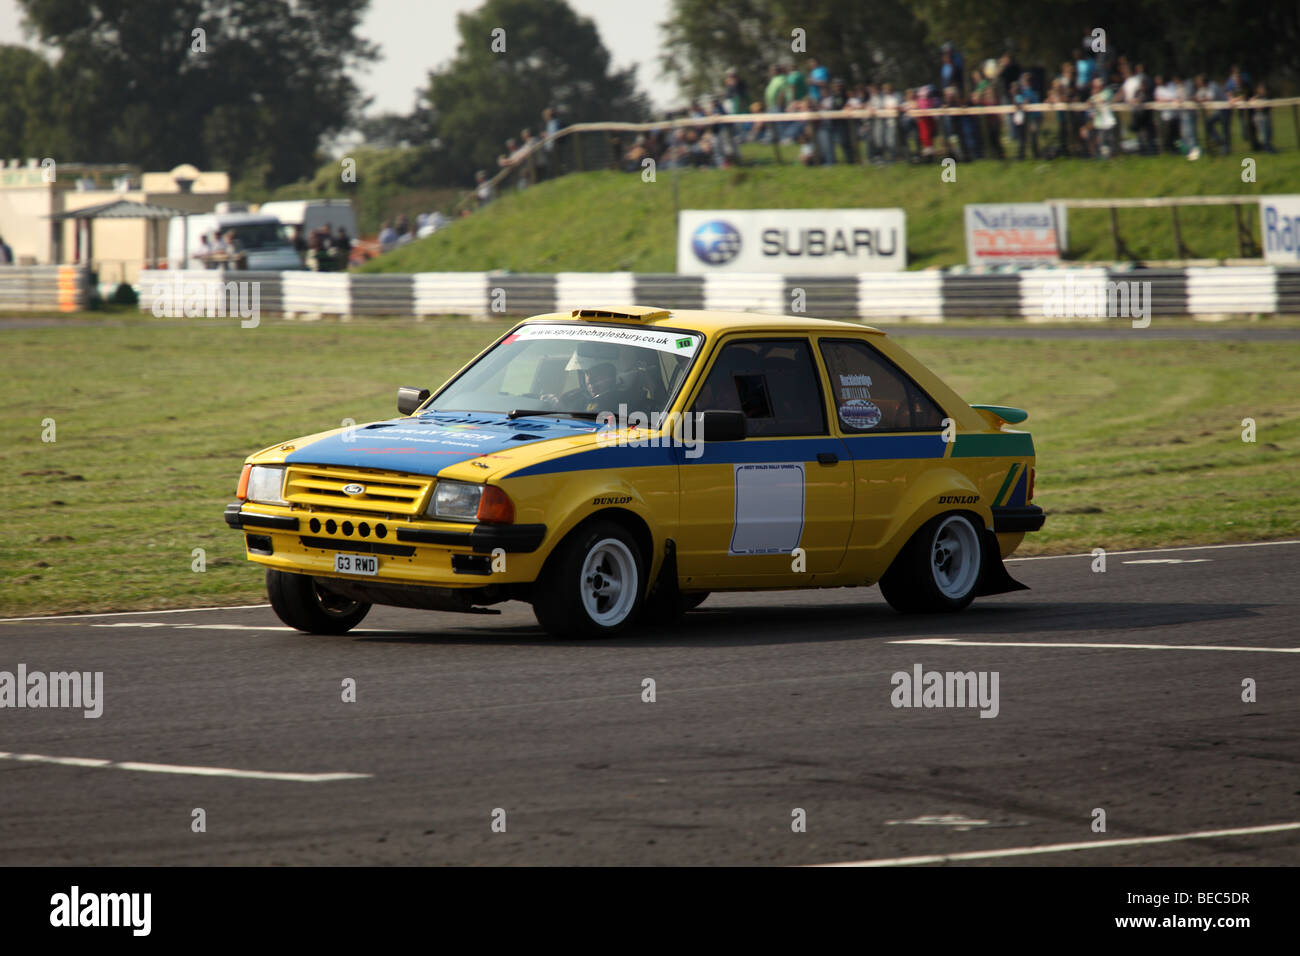 Castle Coombe Rally day 2009 - RWD Ford Escort G3 - Stock Image